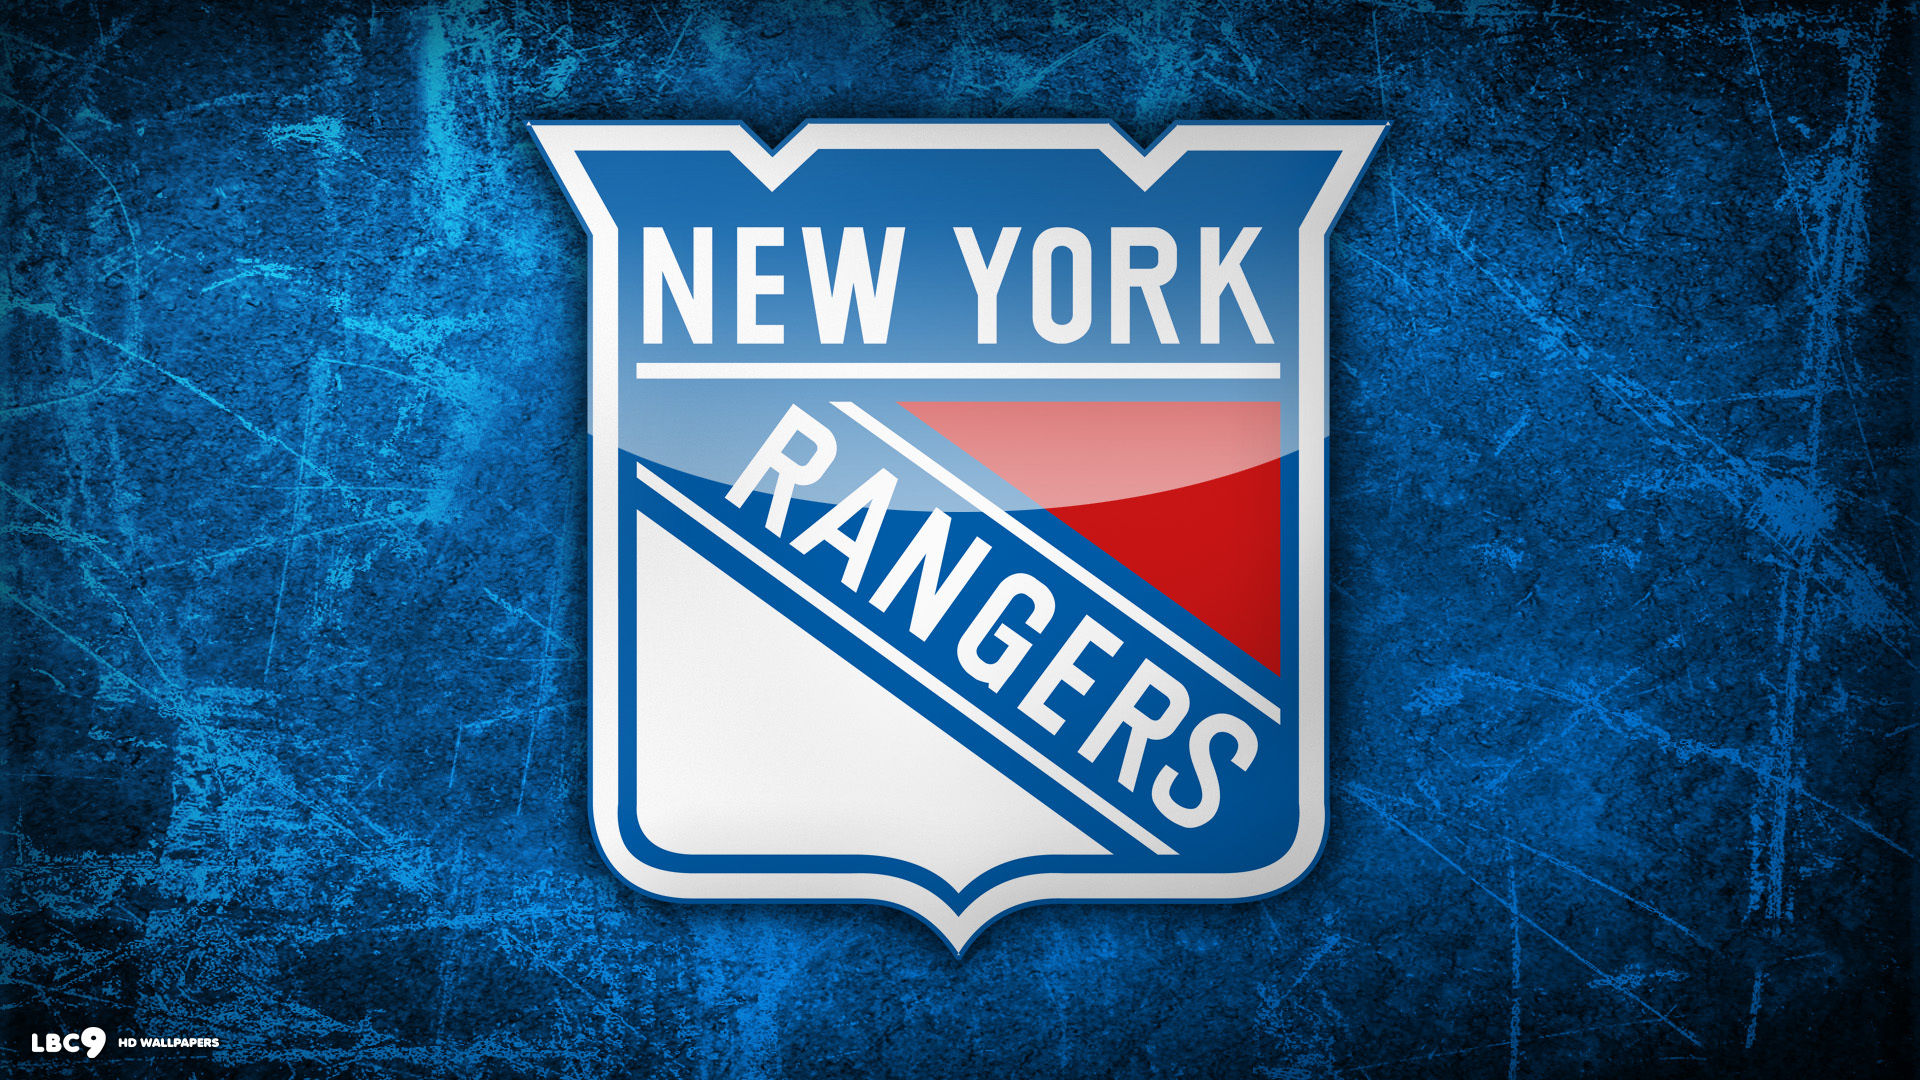 New York Rangers wallpapers New York Rangers background 1920x1080